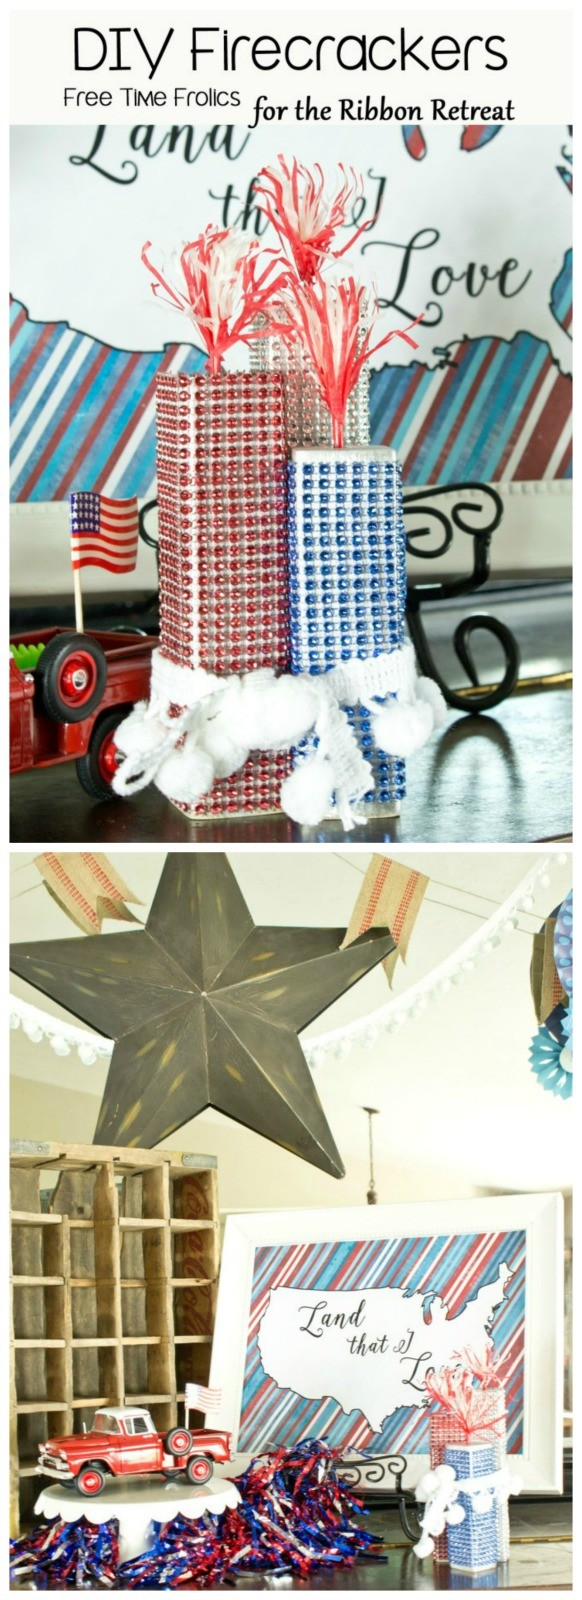 DIY Firecrackers - The Ribbon Retreat Blog